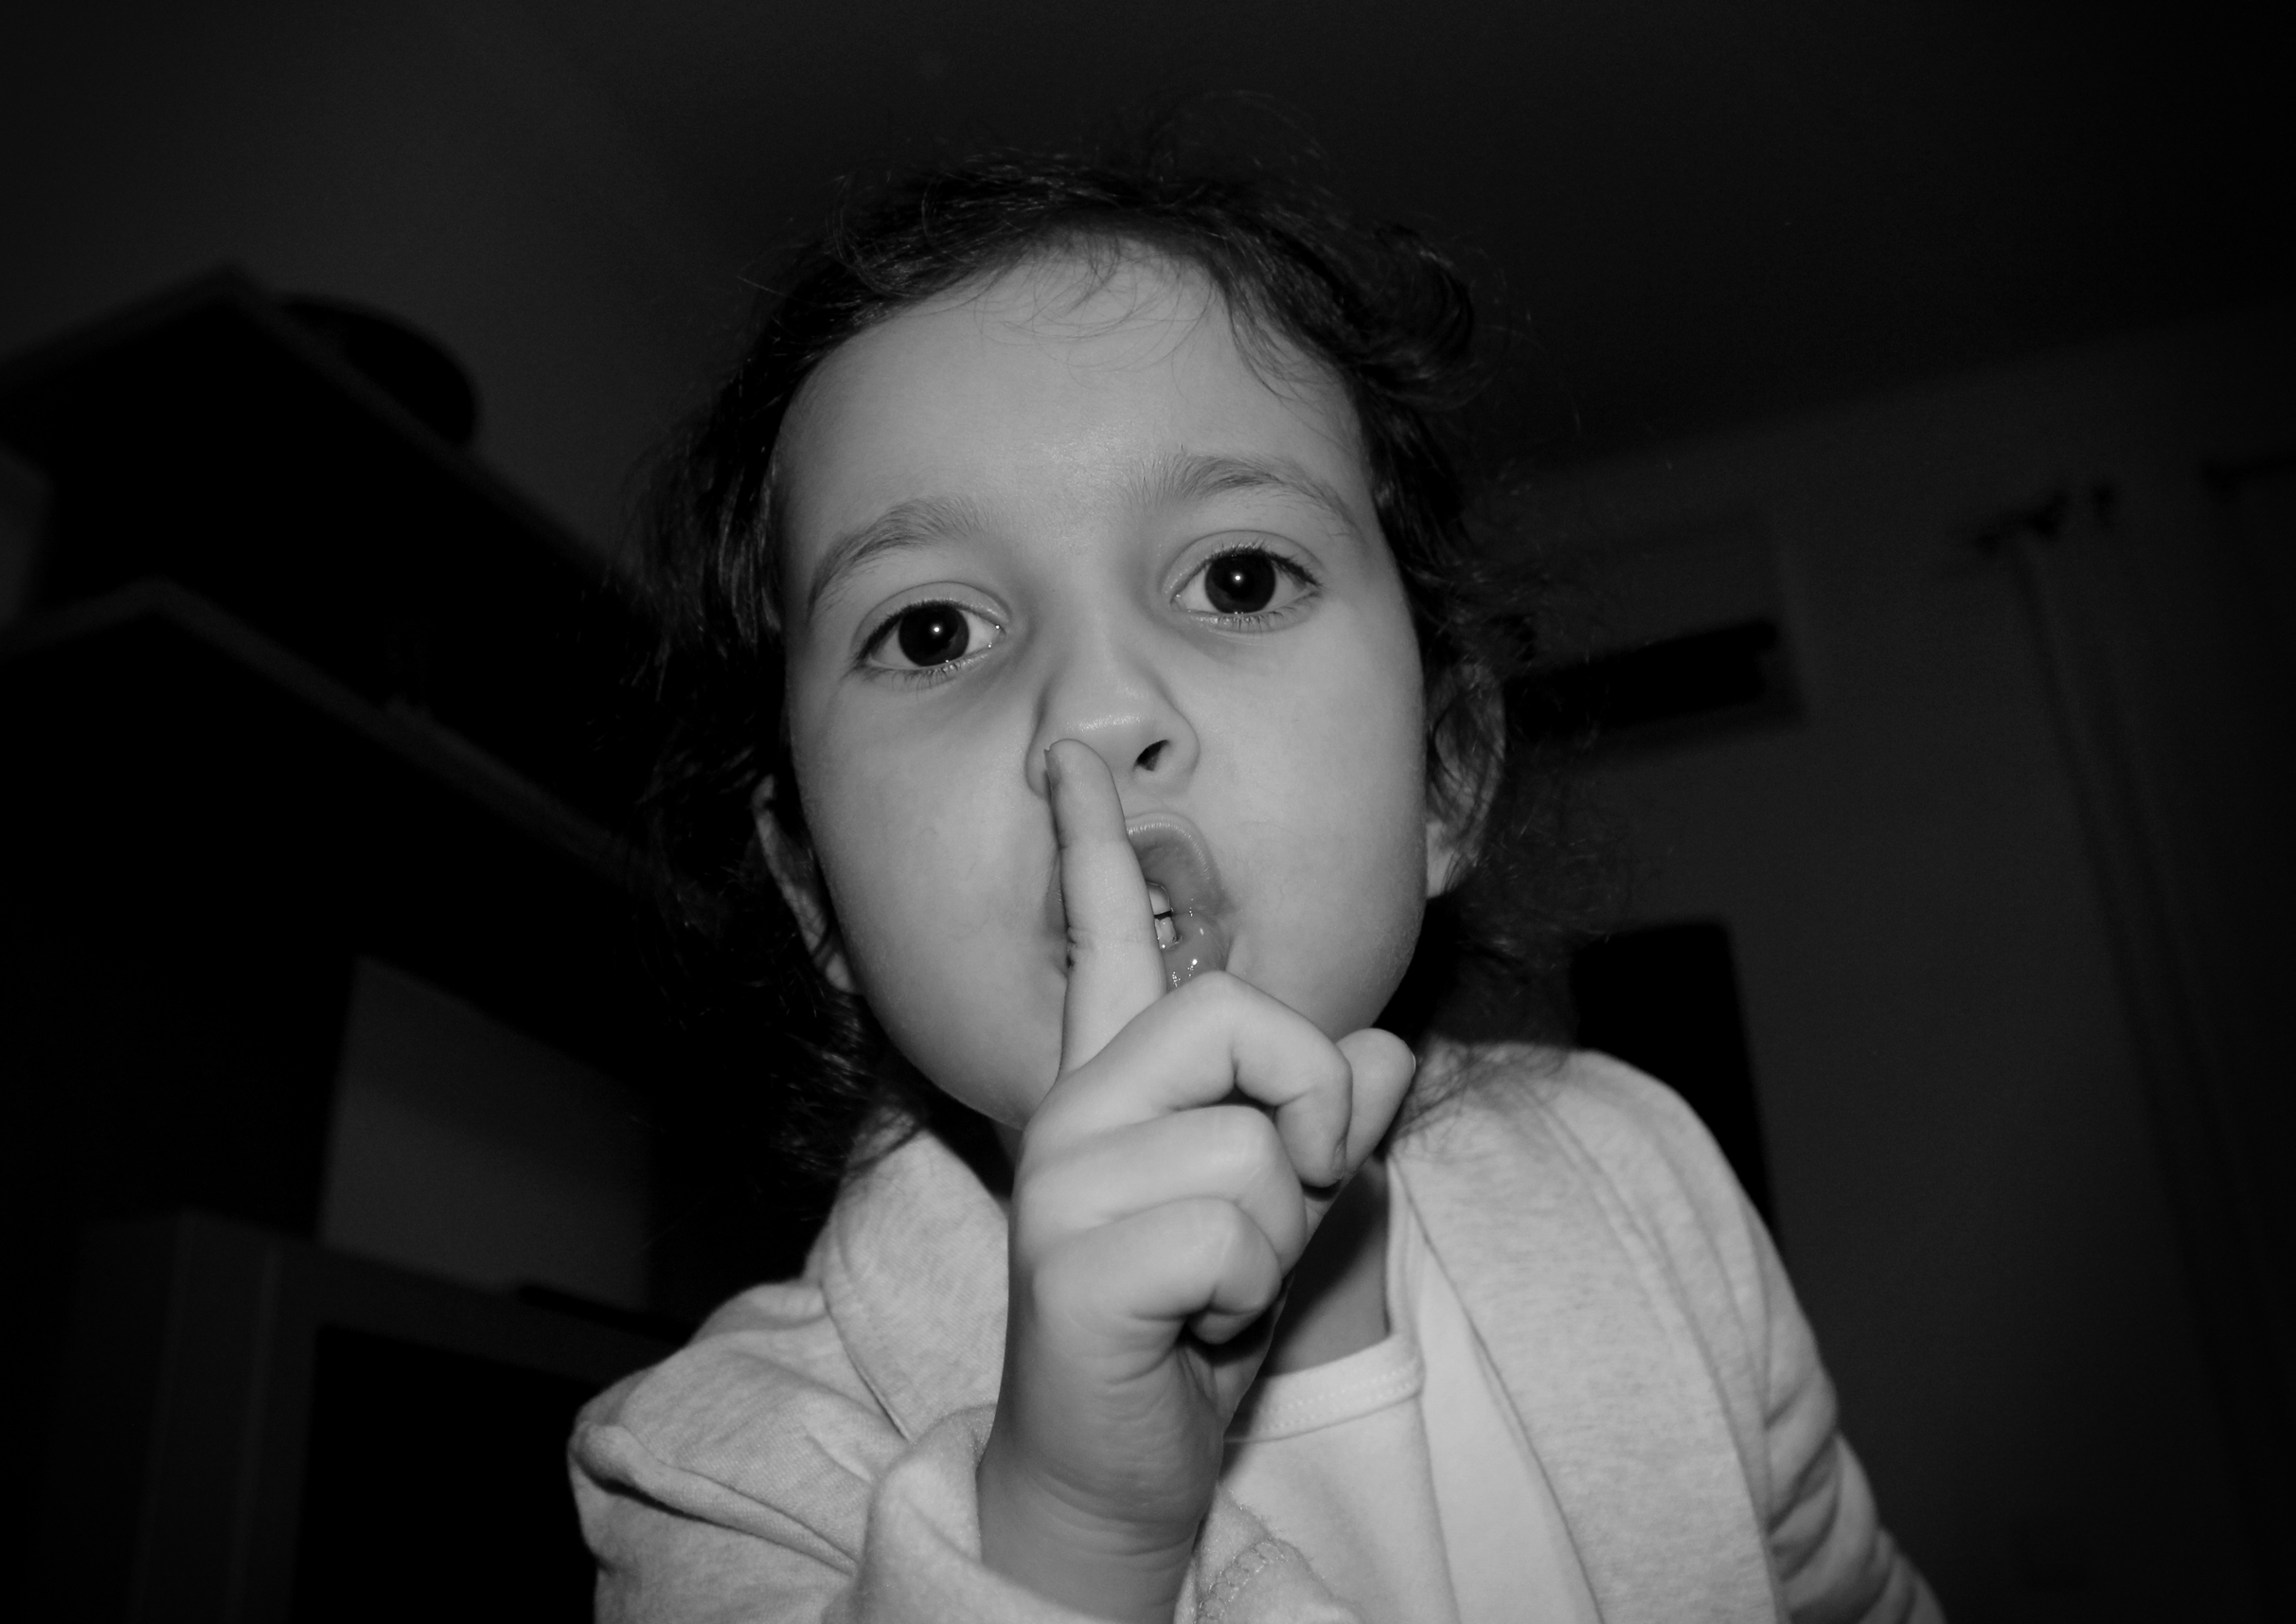 Little Angry Girl - Shut Up Gesture, Adorable, Quiet, Mouth, Multiethnic, HQ Photo